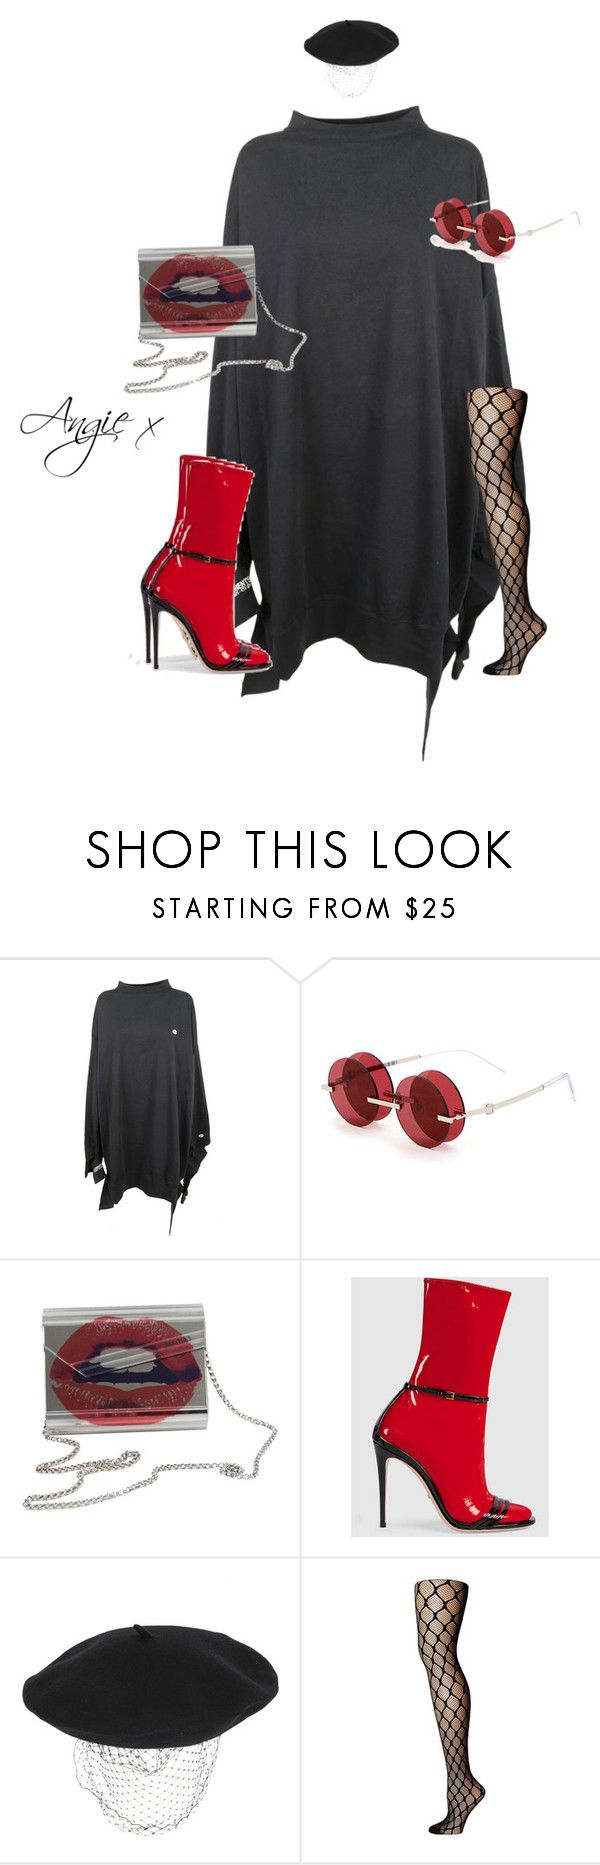 """Untitled #698"" by stylzbyang ❤ liked on Polyvore featuring Vetements, Percy Lau, Jimmy Choo, Gucci, Silver Spoon Attire and Pretty Polly"